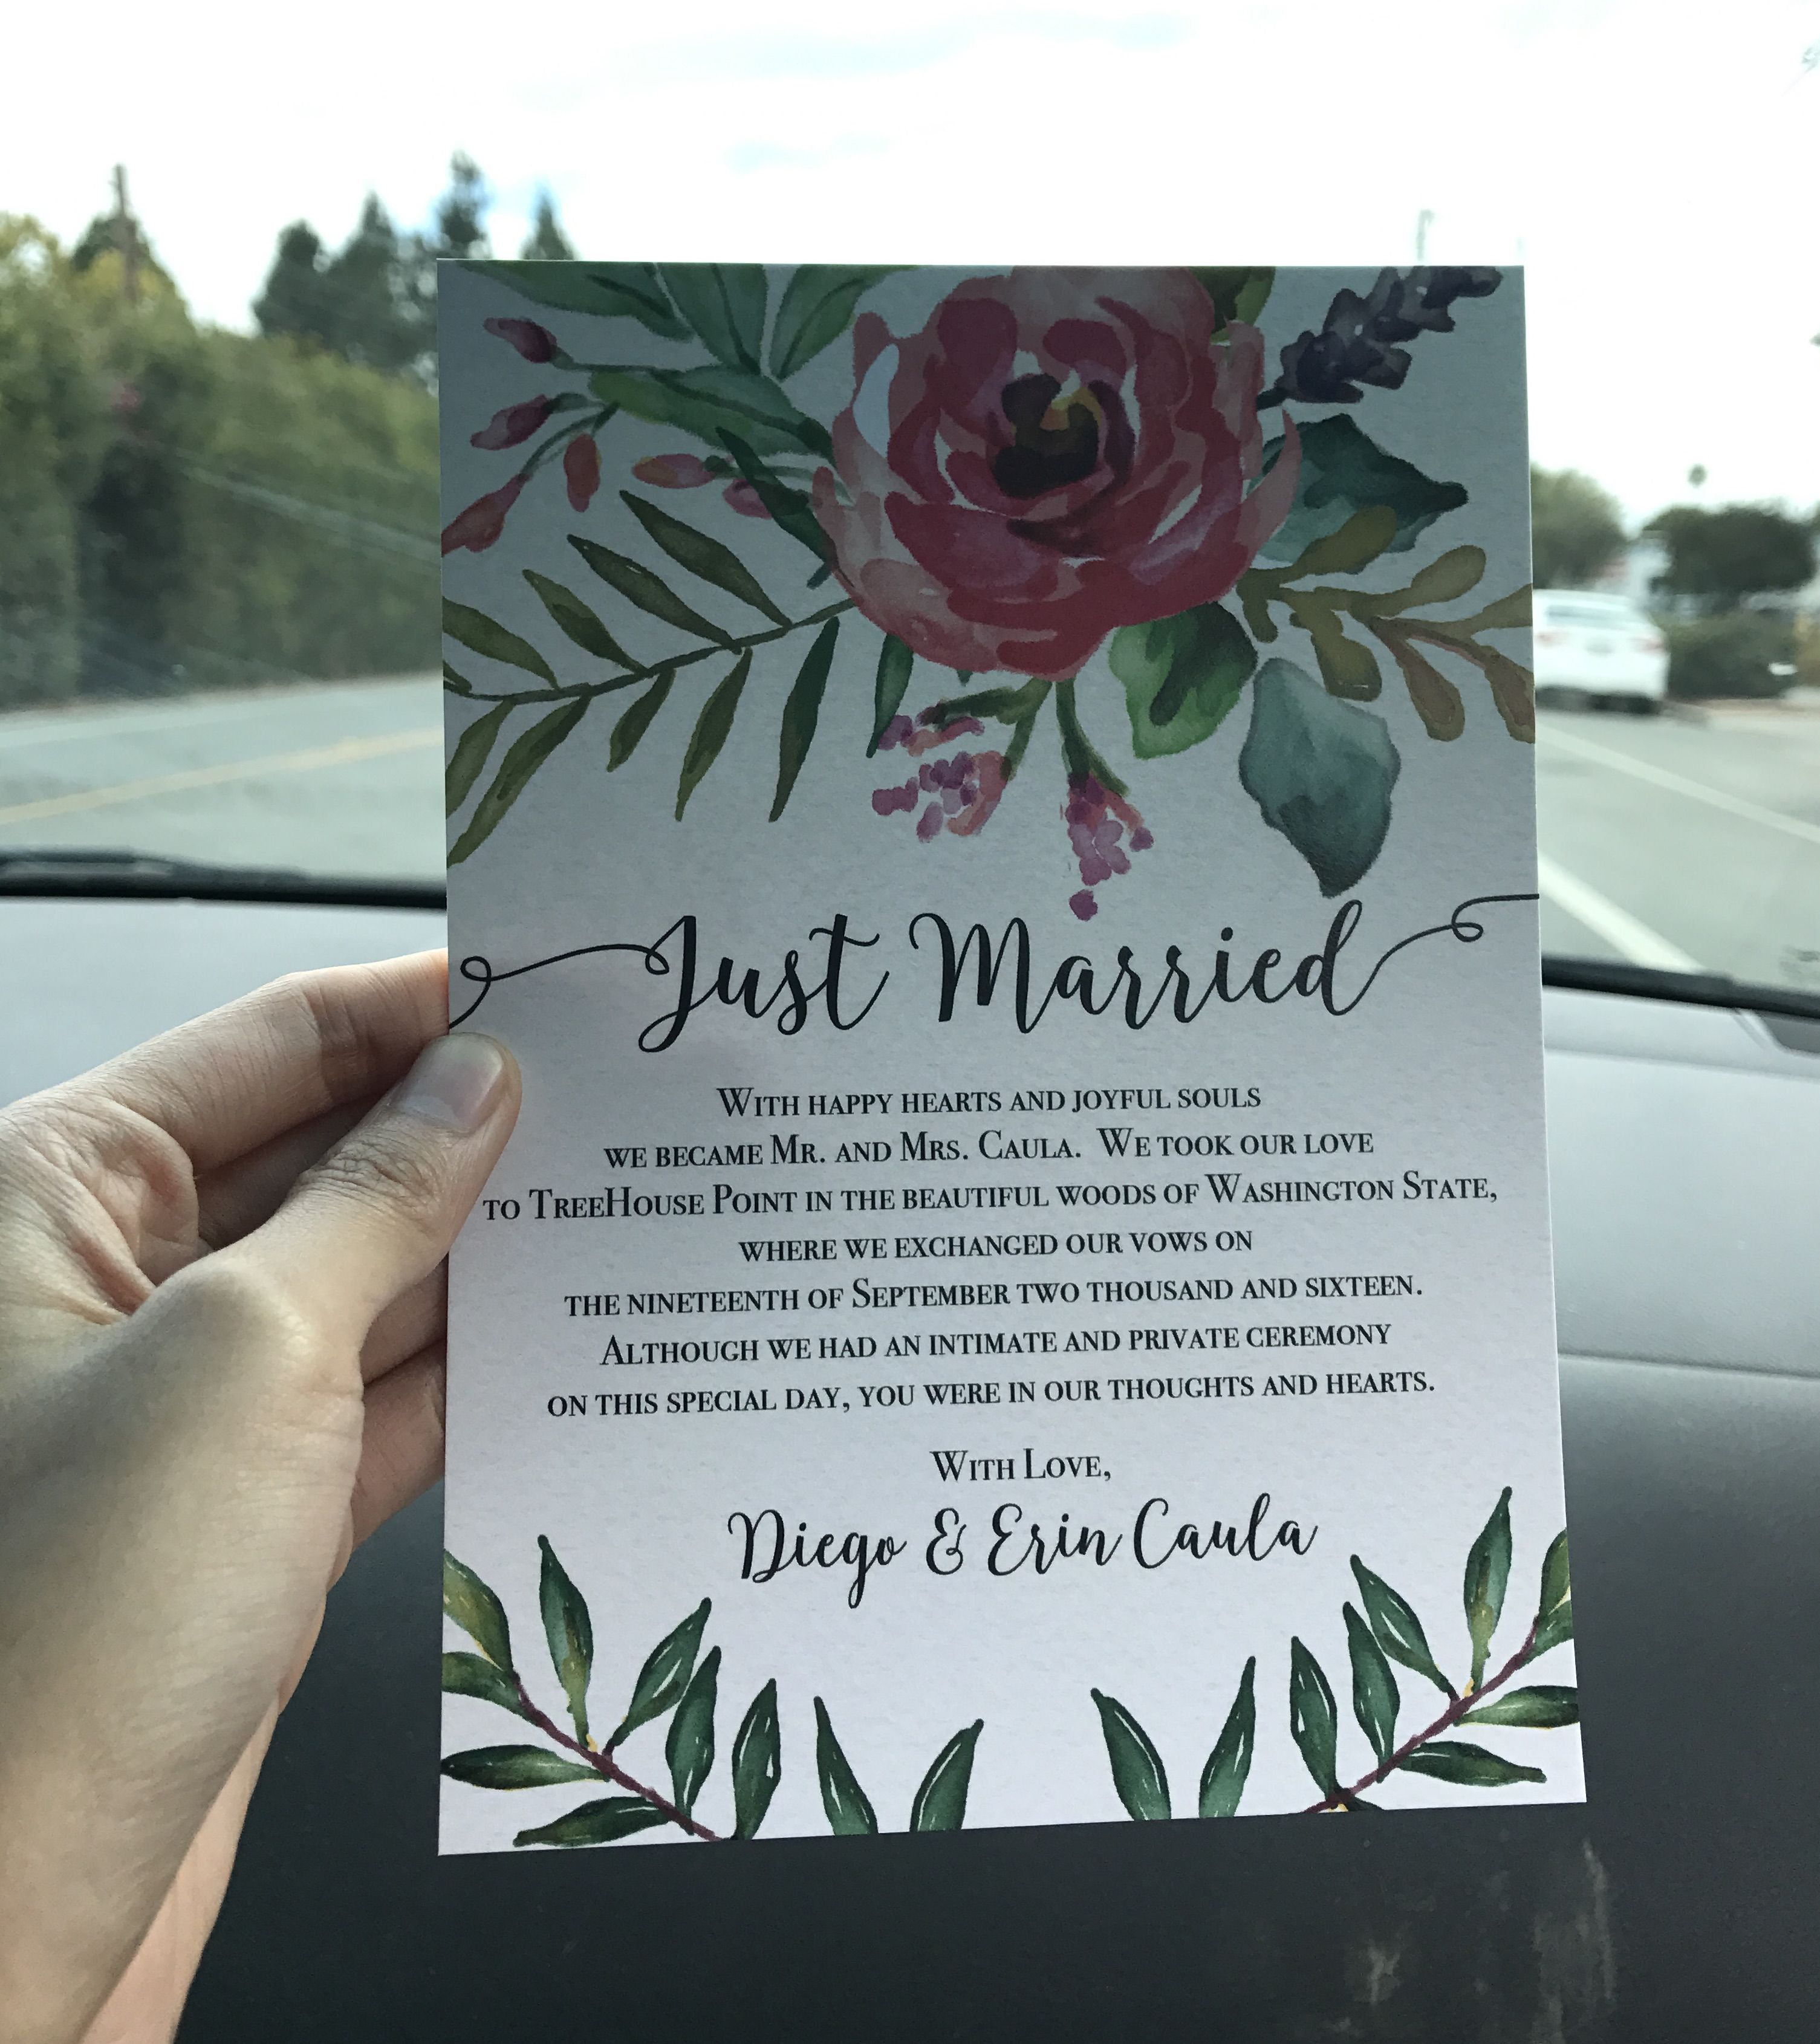 Colorful and creative elopement announcement card idea